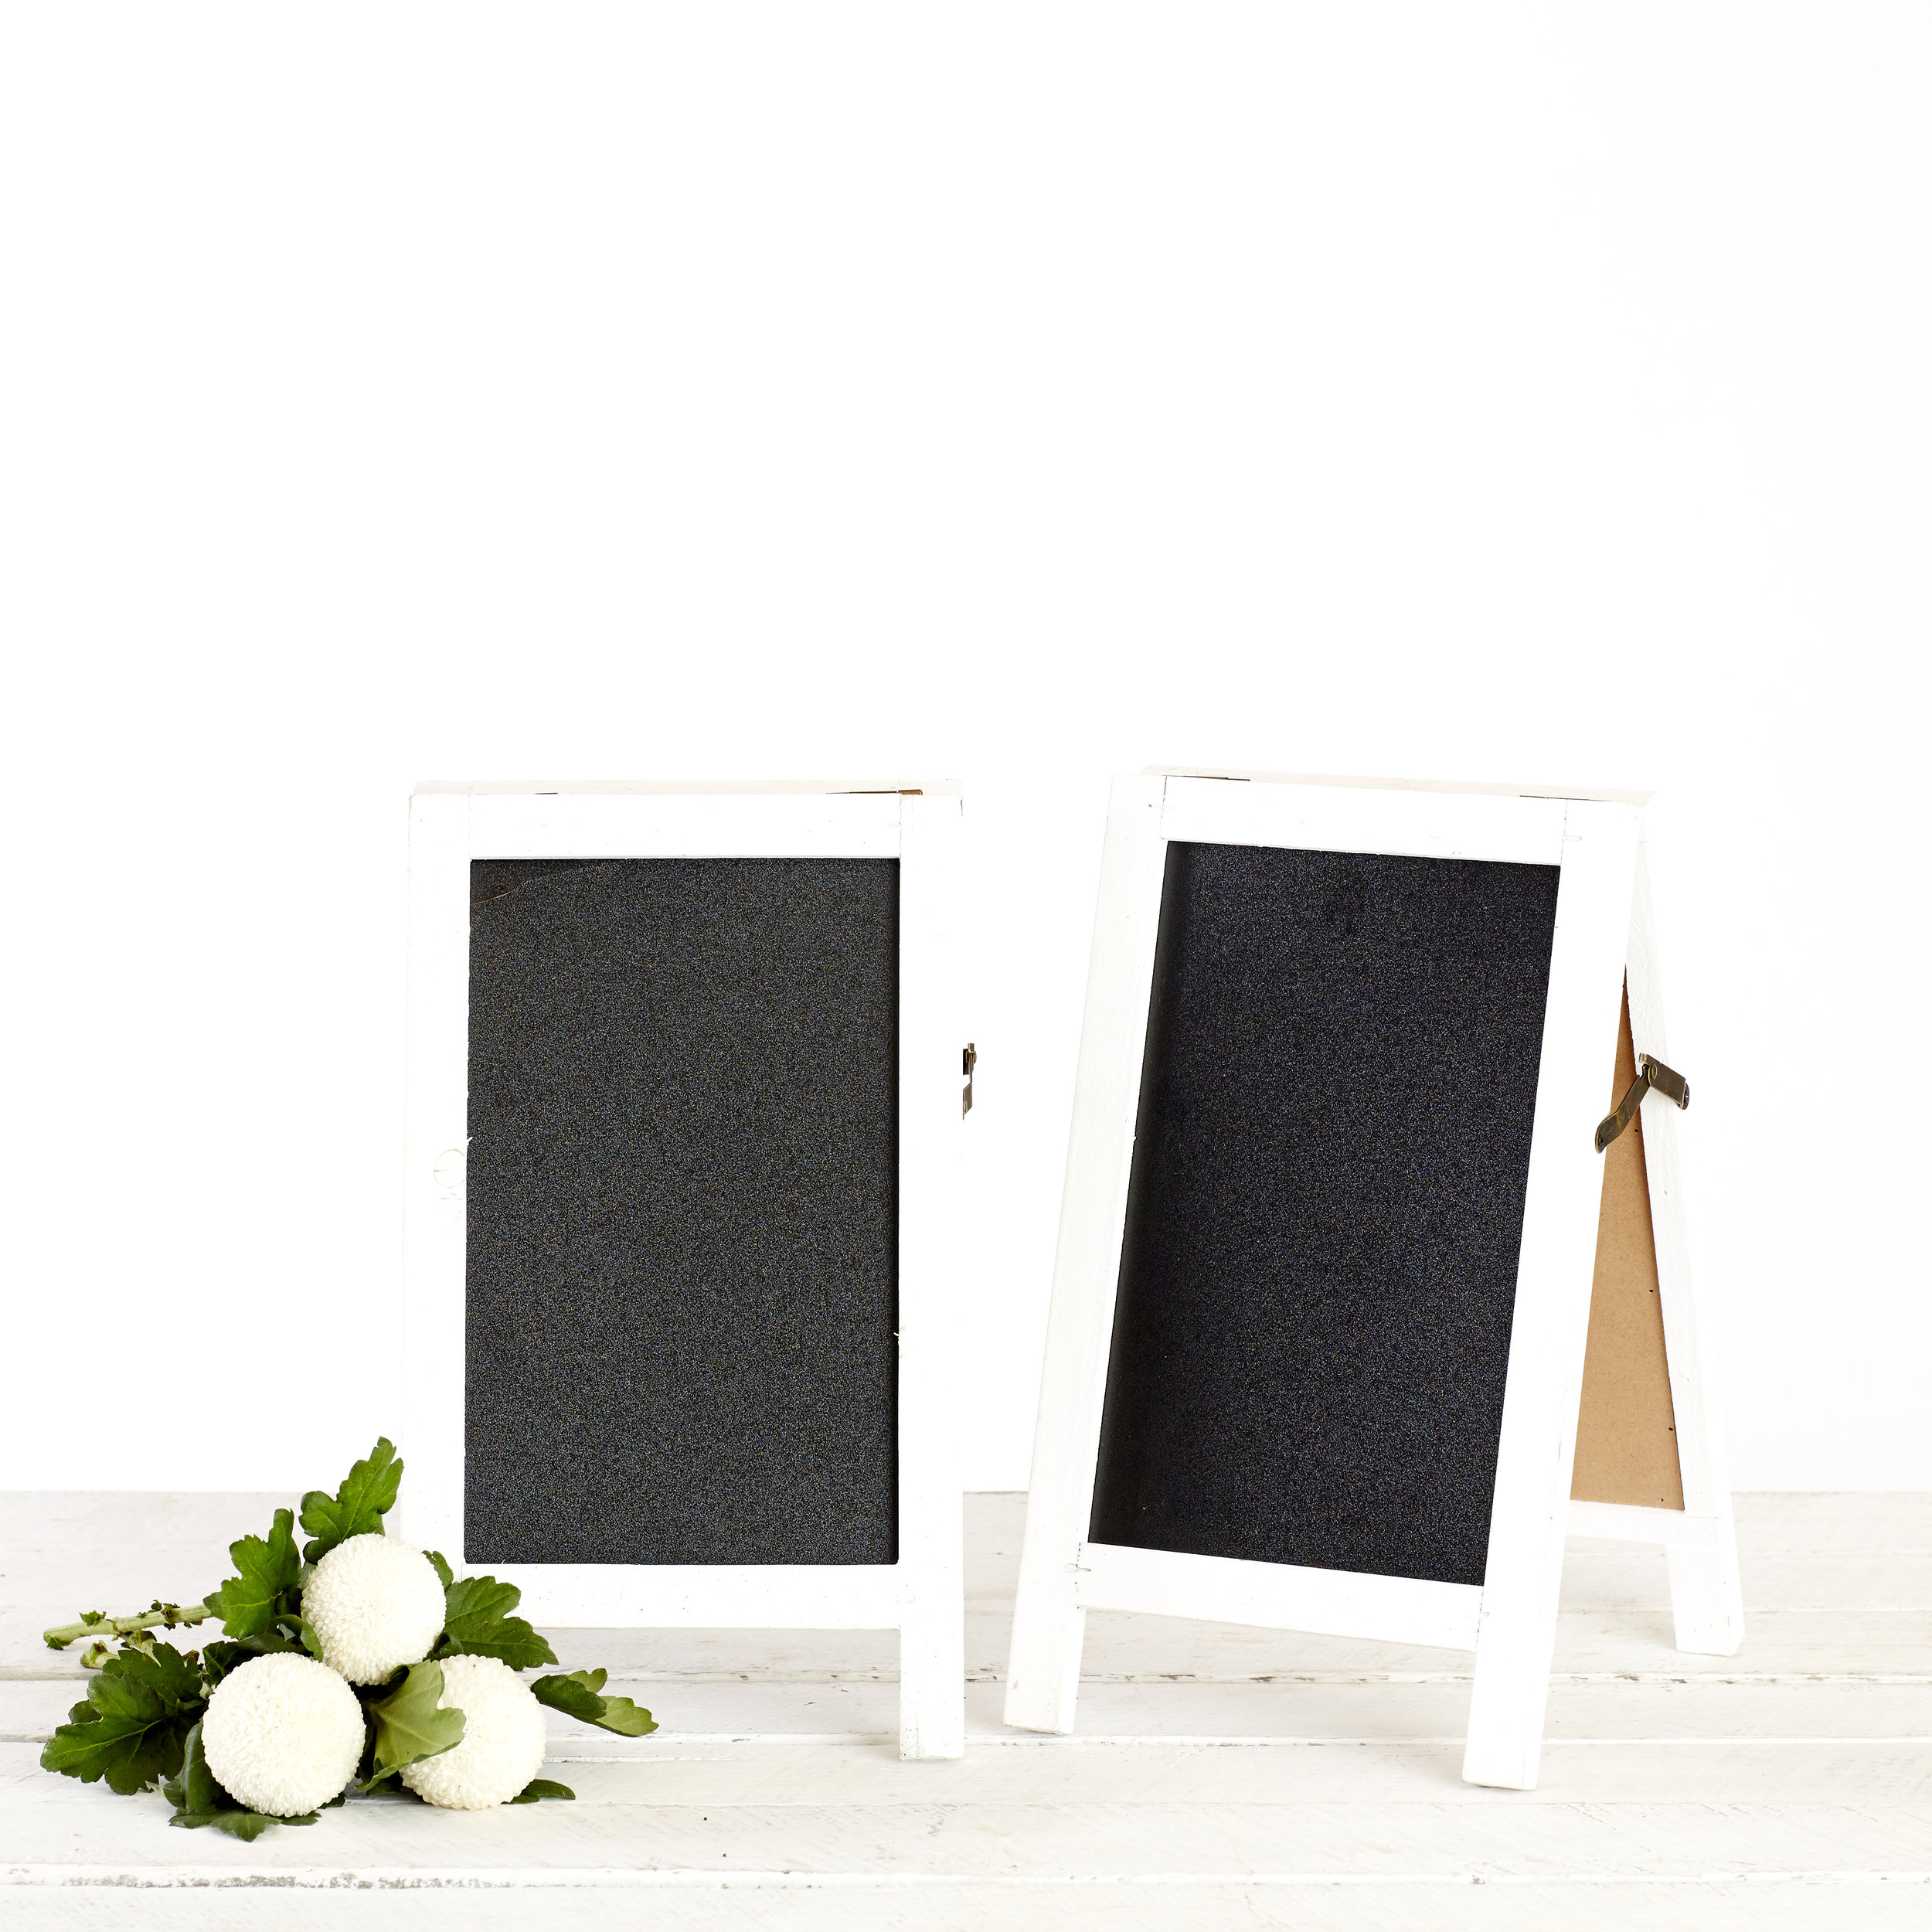 DOUBLE SIDED TABLE CHALKBOARDS